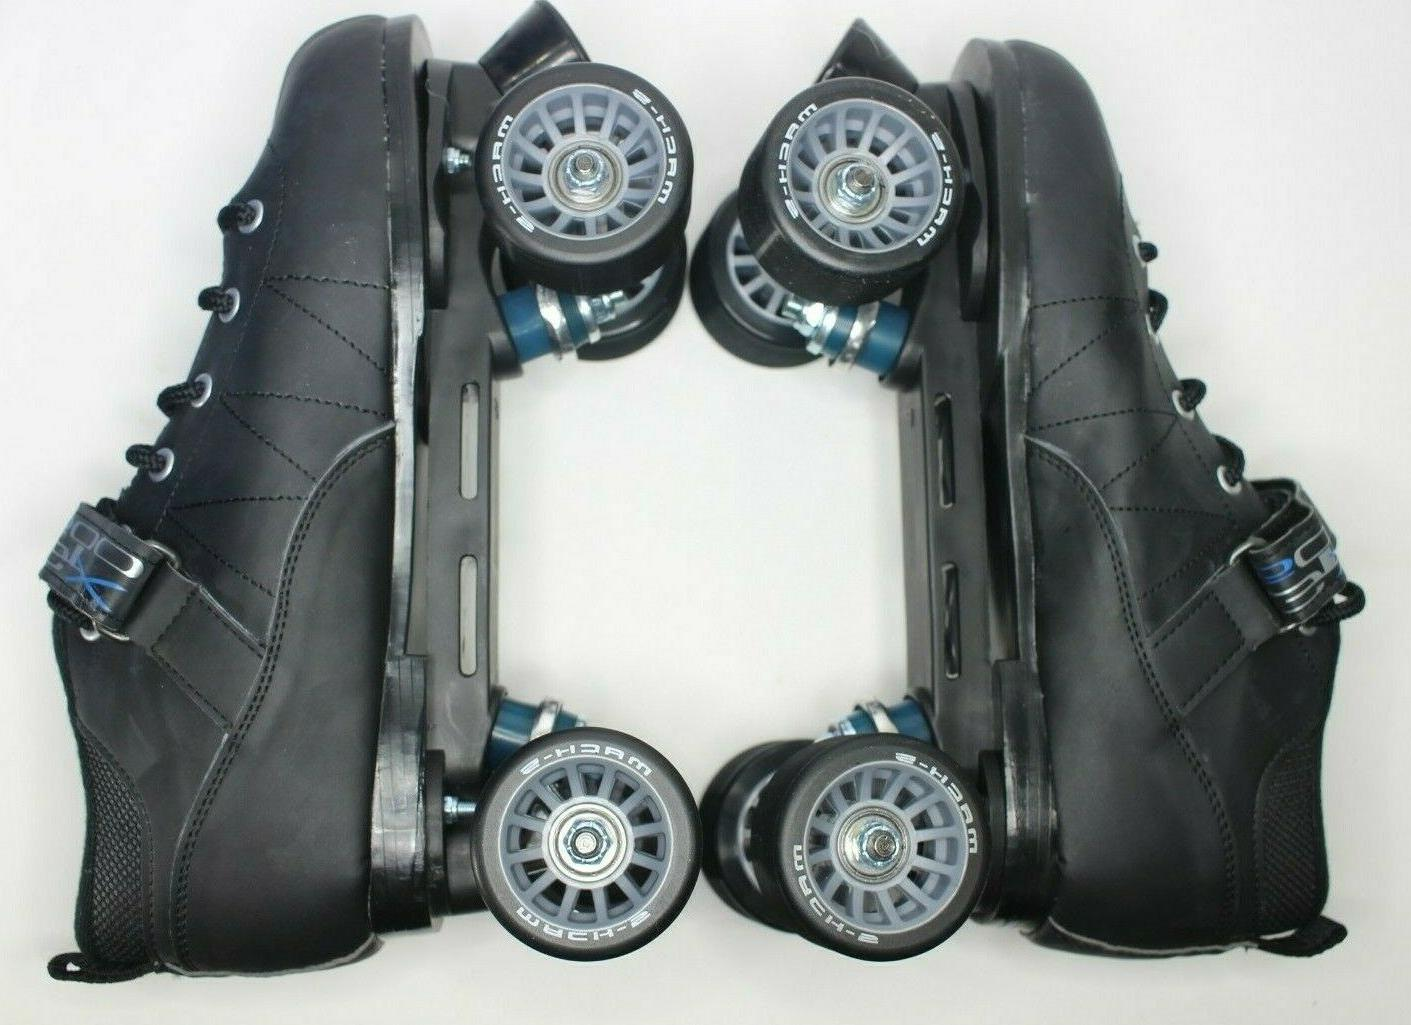 Pacer GTX-500 Adult 10 Model New